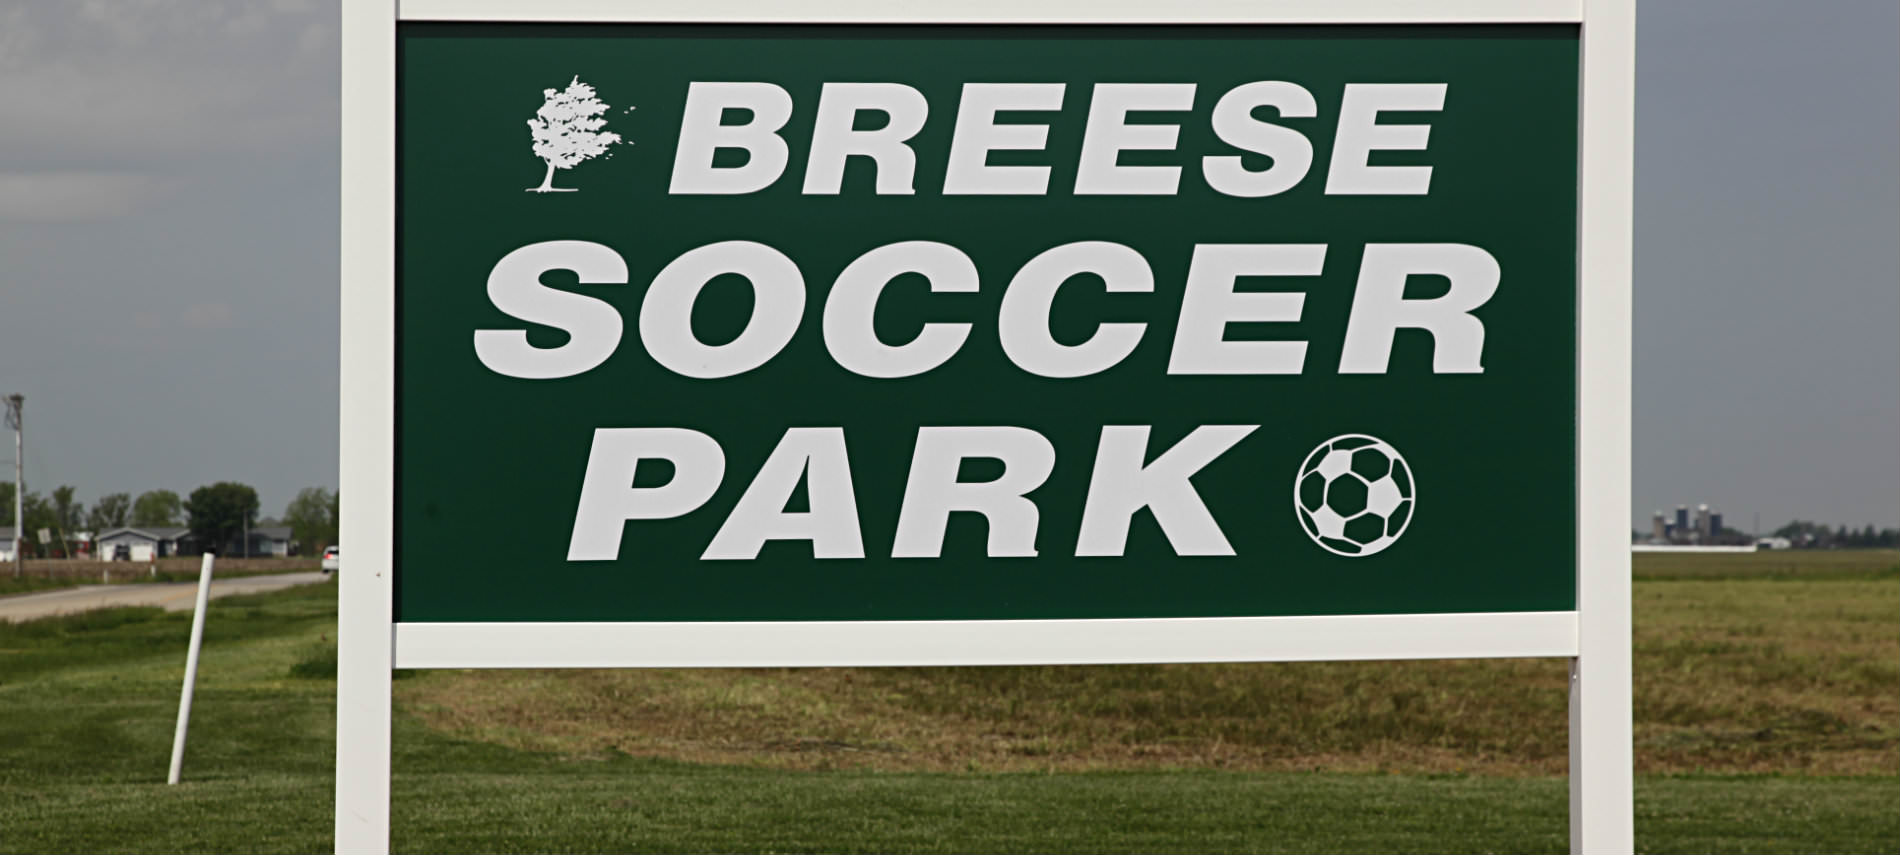 Green wood sign with white border and lettering for Breese Soccer Park, along a dirt raod, house and trees in background.